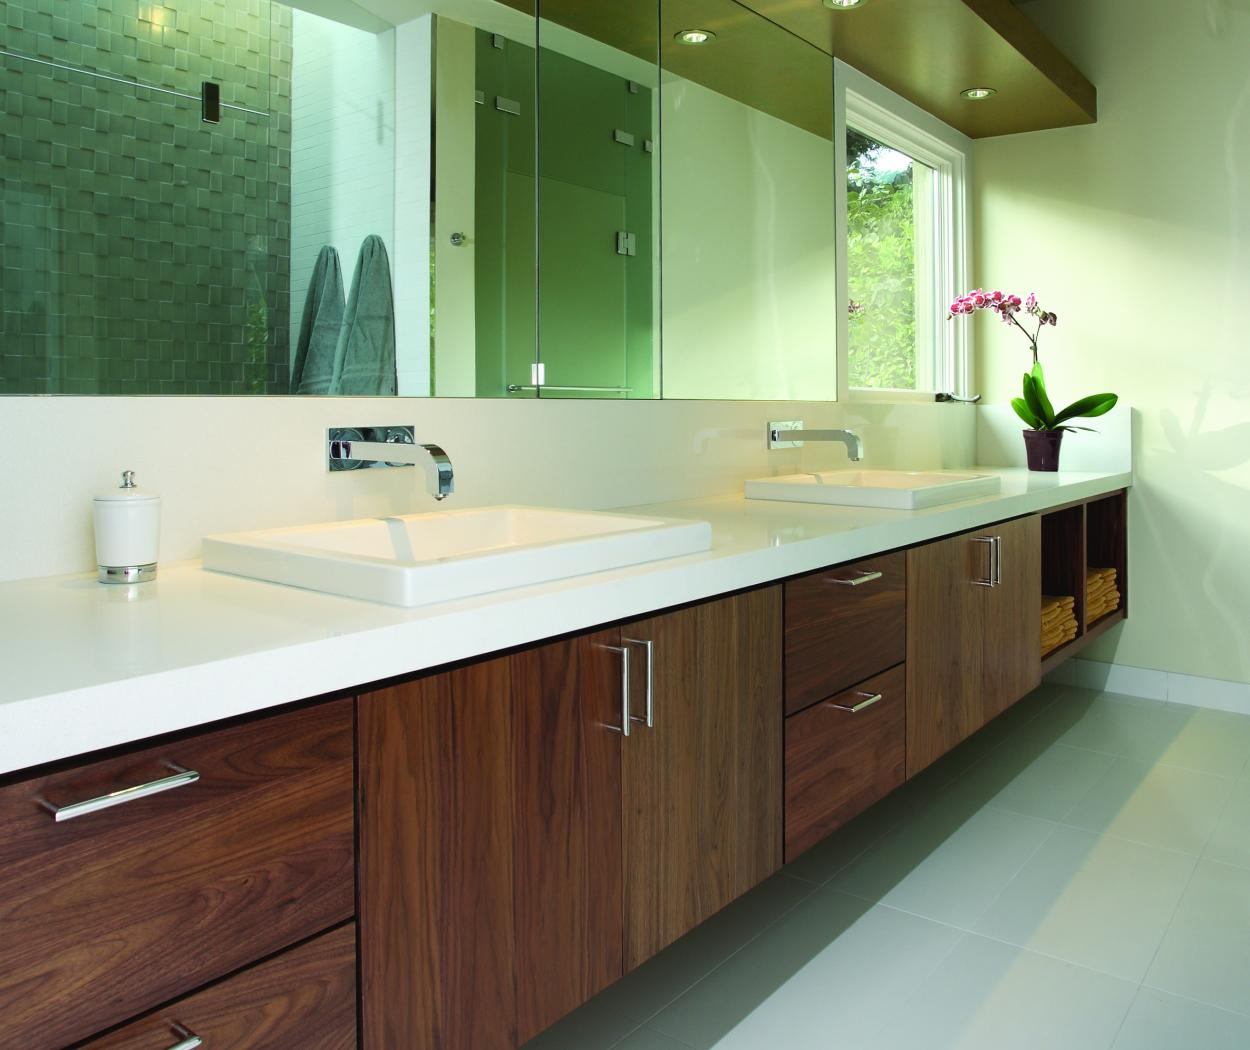 Contemporary Master Bathroom Vanity built in Walnut with a Beautiful Clear Finish, Double Sinks and a White Countertop